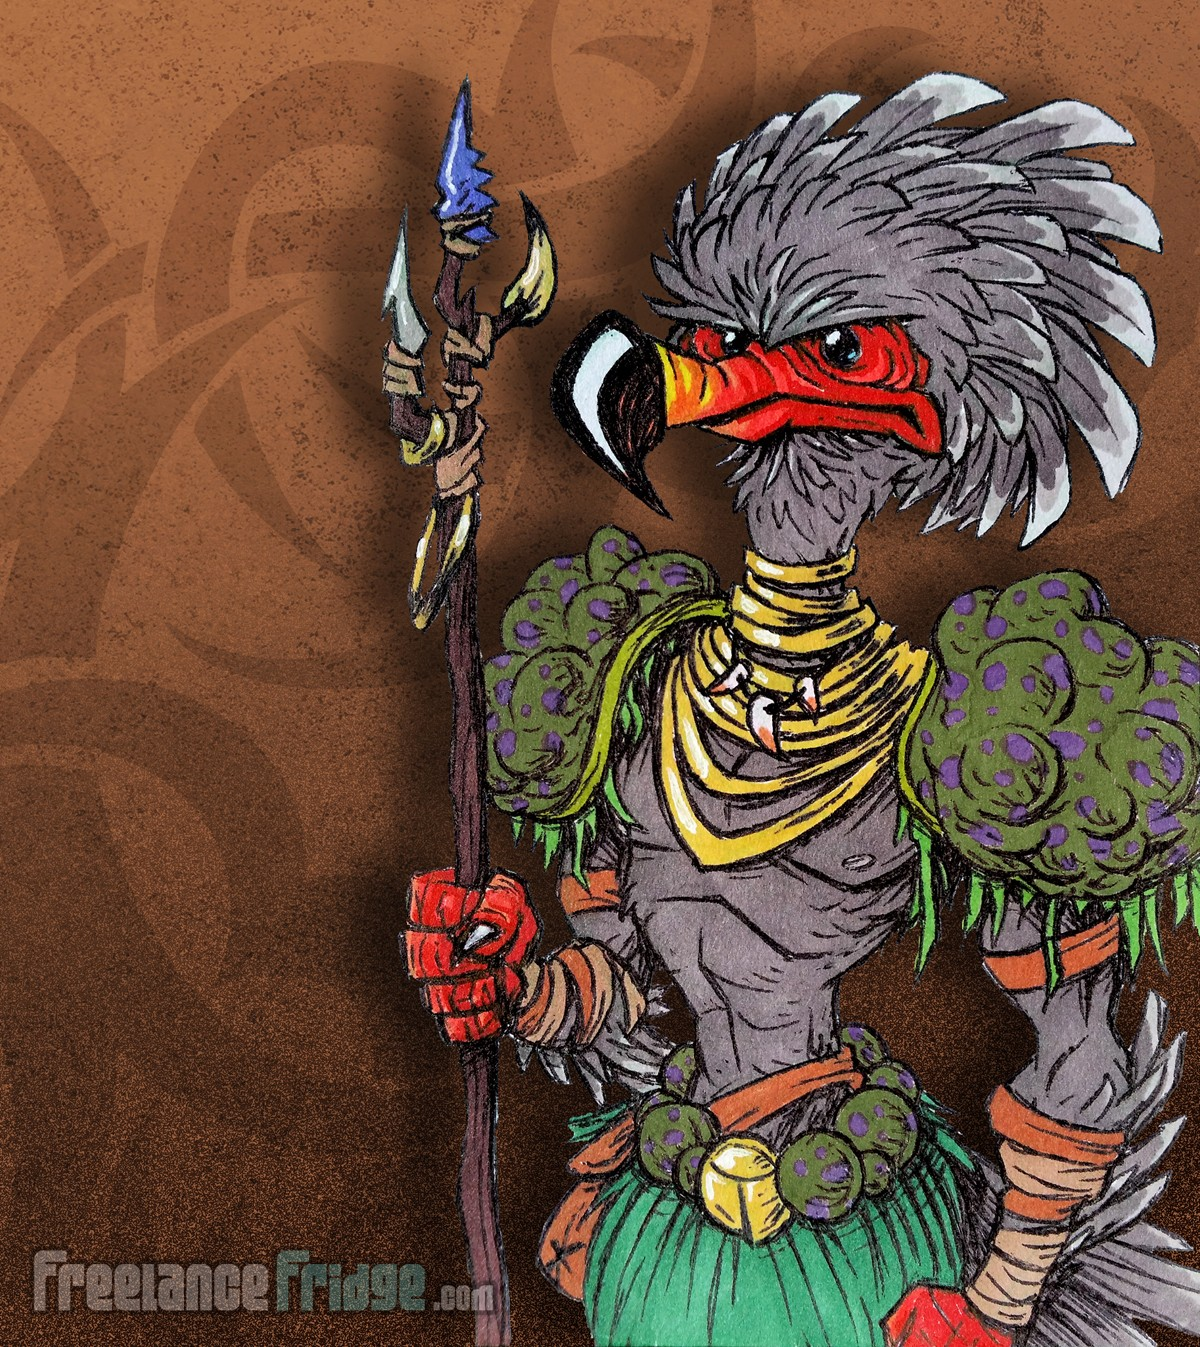 Primitive Tribal Bird Warrior with Spear Character Creature Concept Cartoon Pen and Color Markers Drawing Illustration